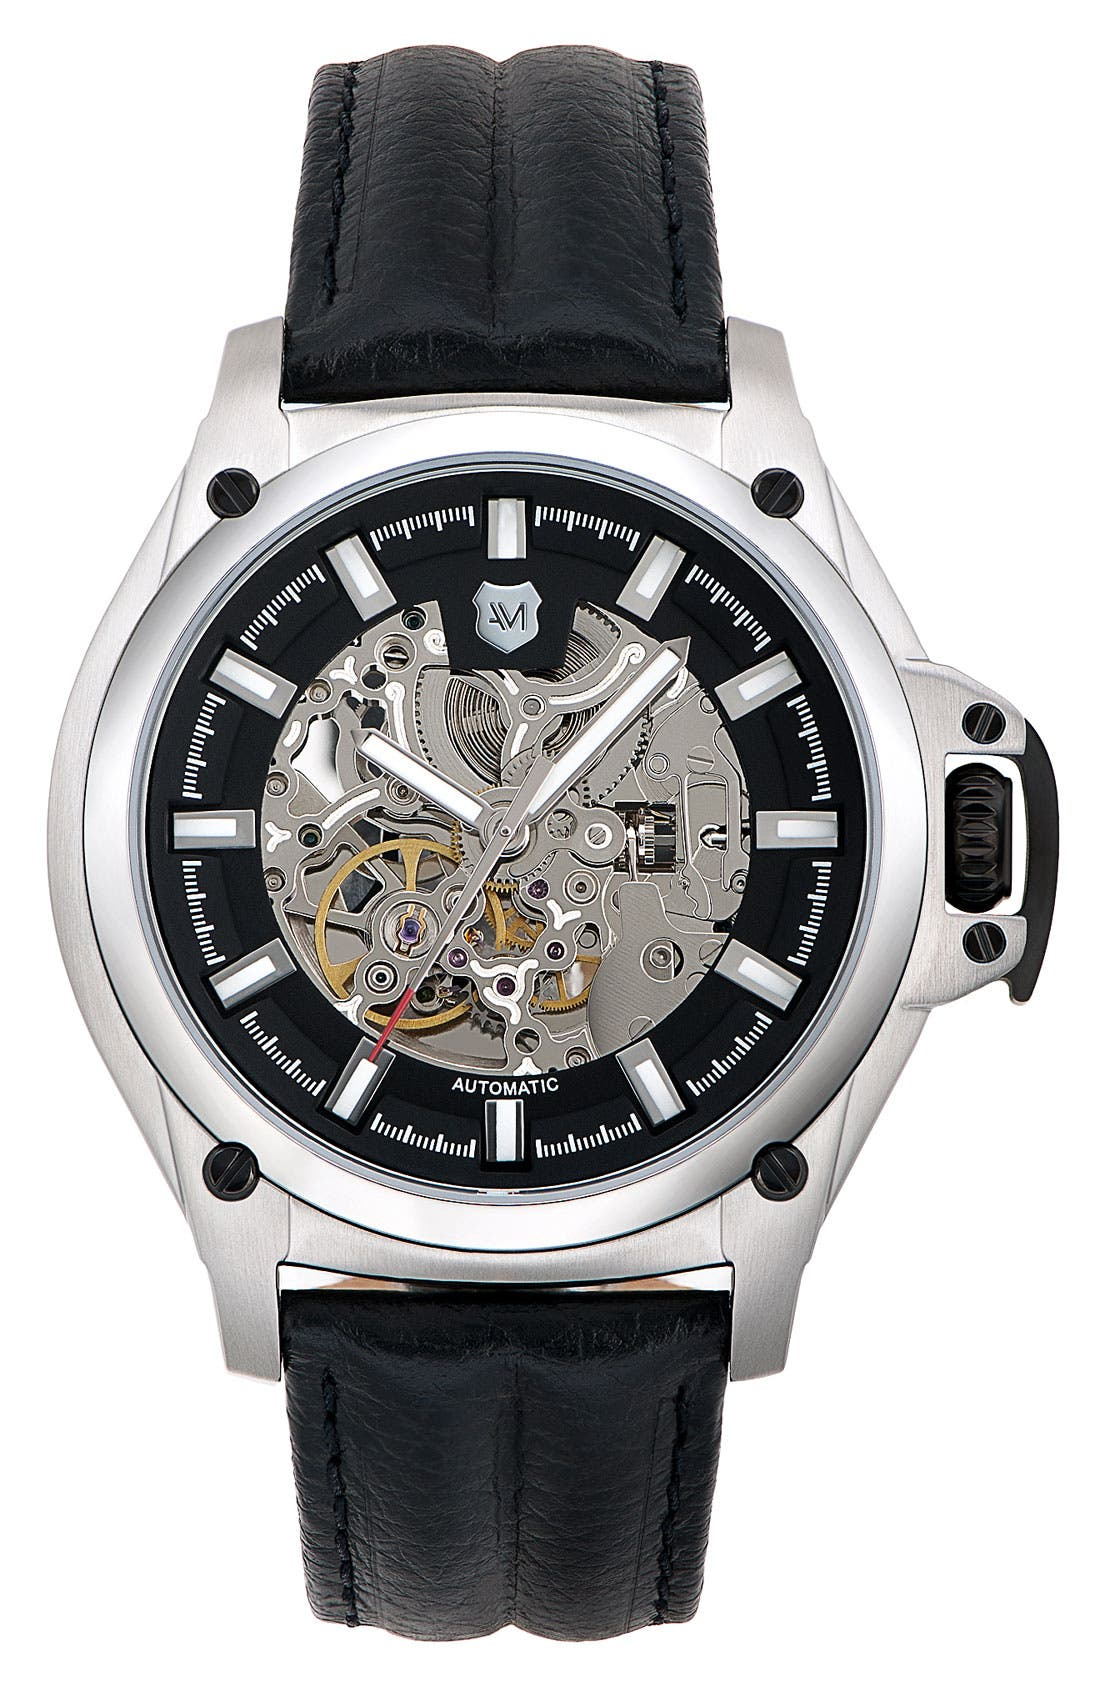 ANDREW MARC Watches 'G-III Pro' Automatic Leather Strap Watch, Main, color, 001